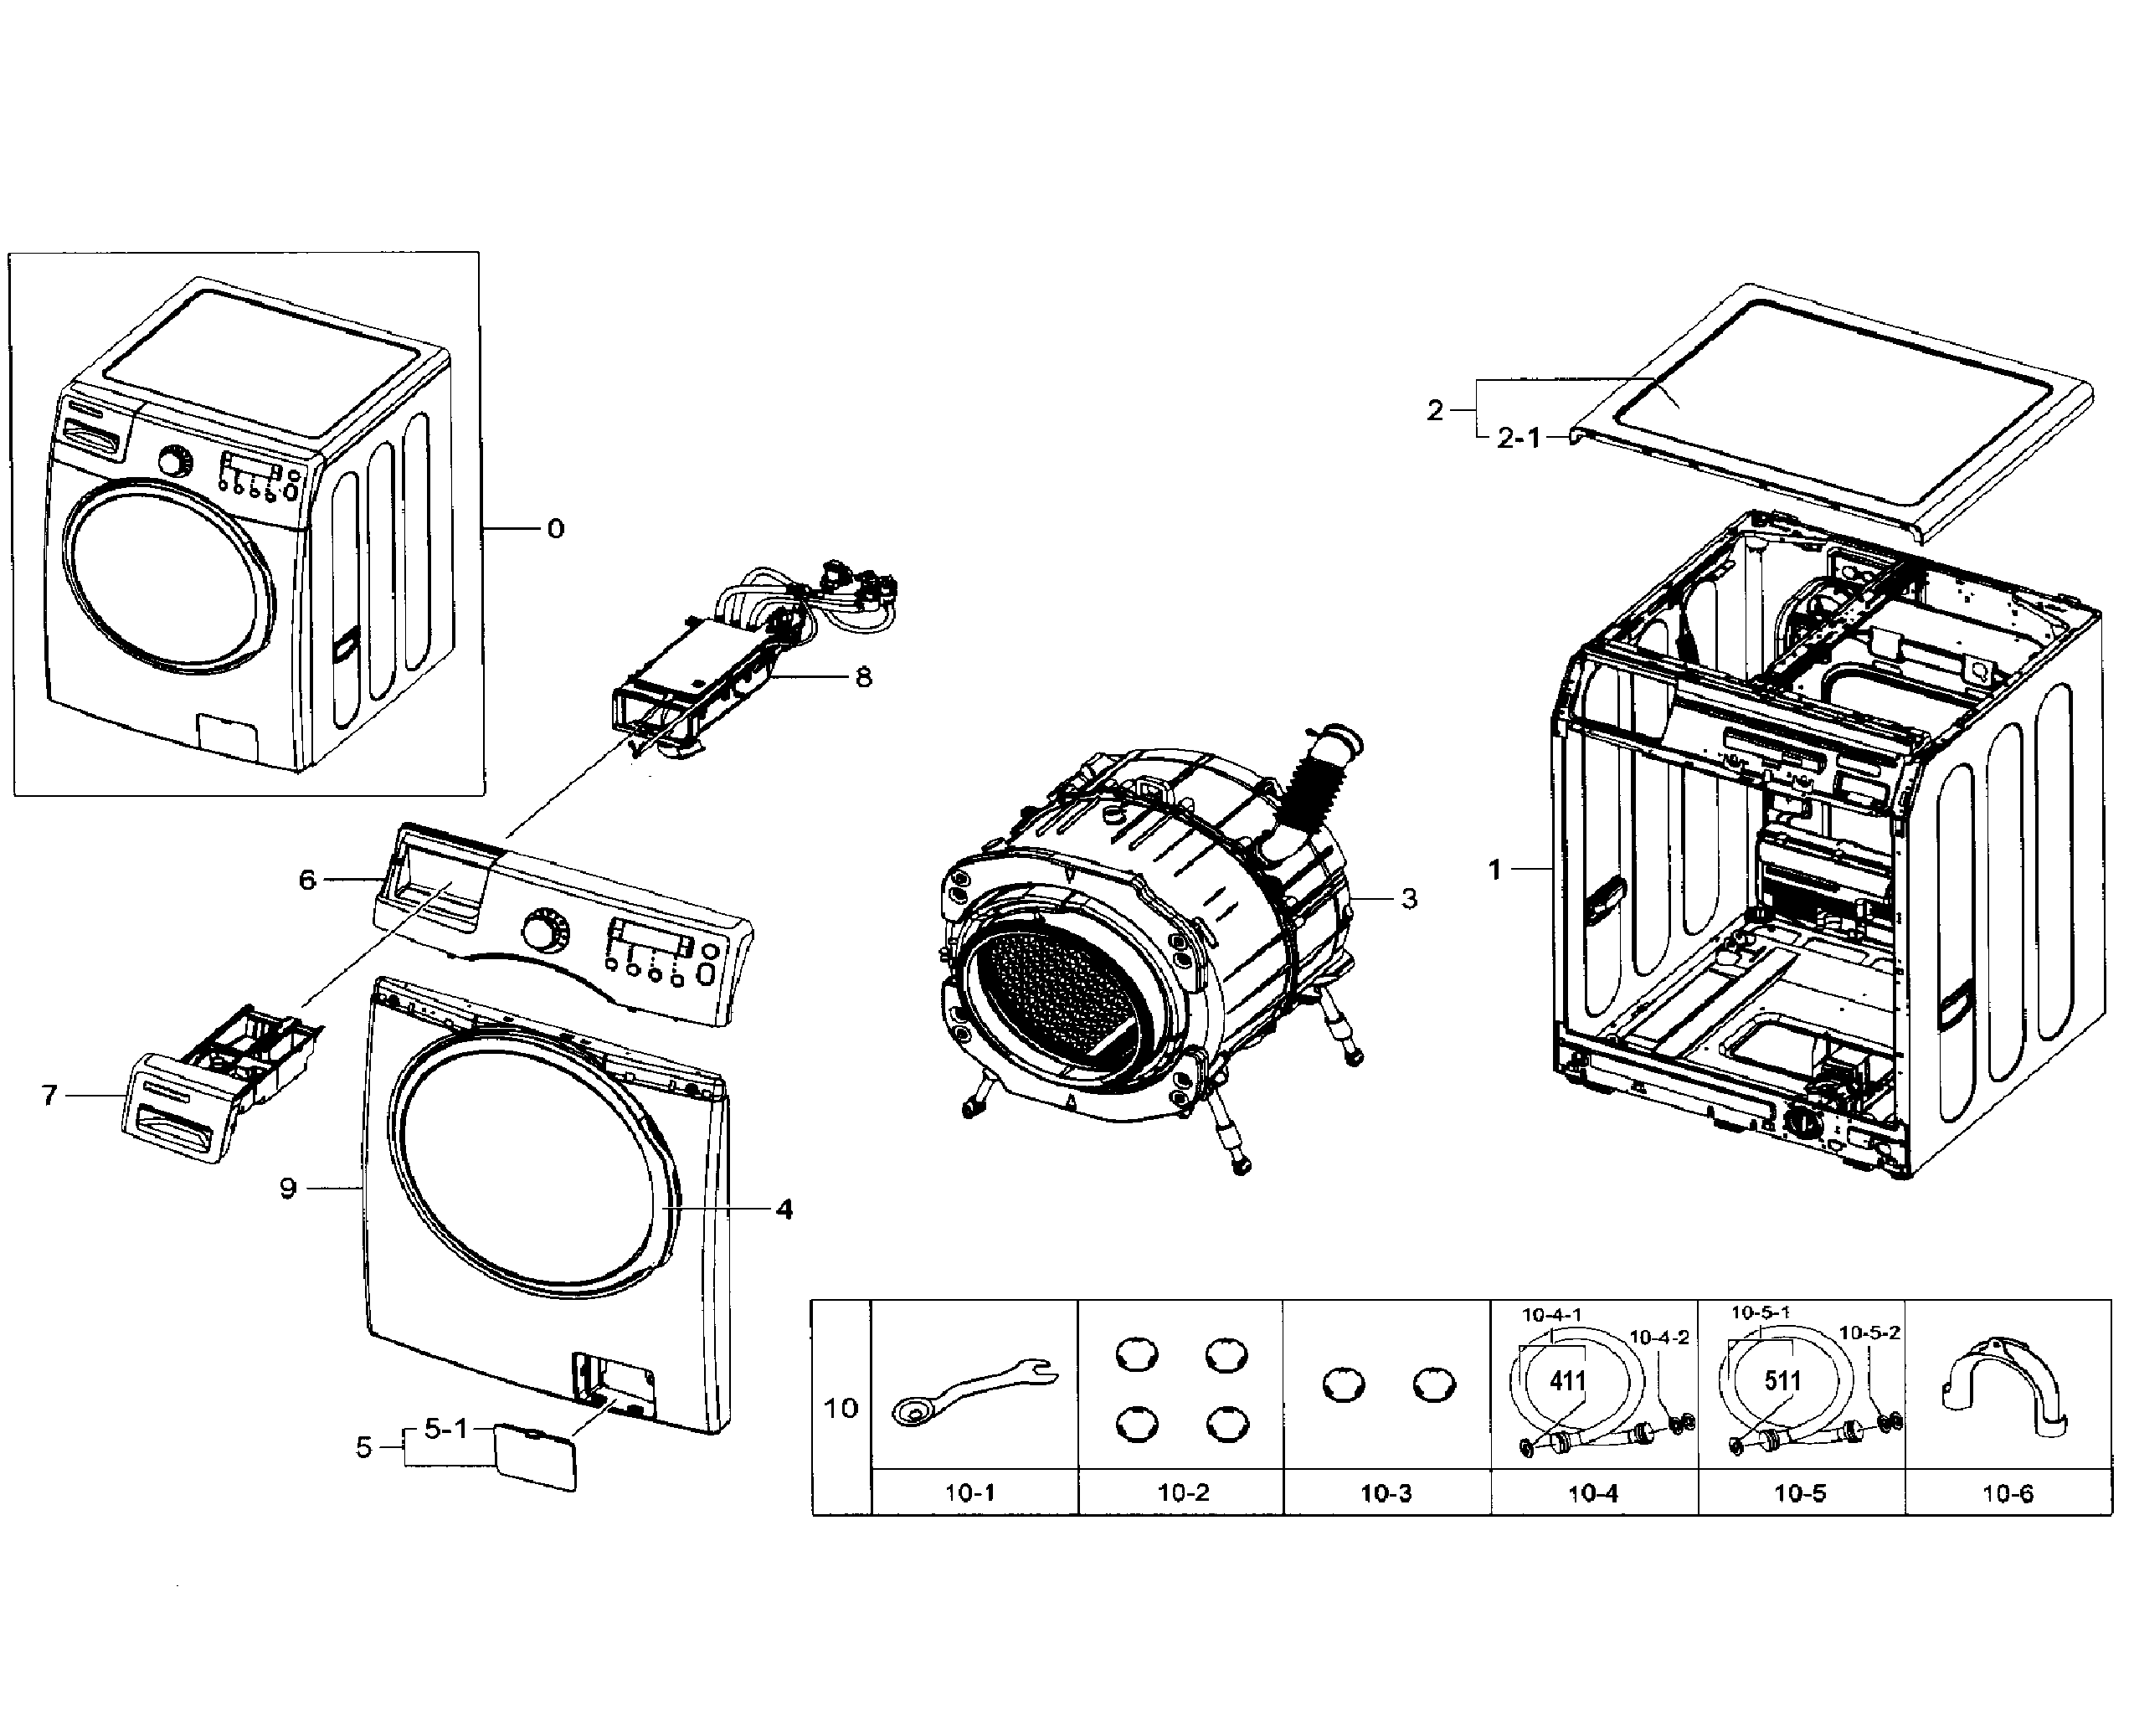 washer motor wiring diagram further clothes dryer parts diagram